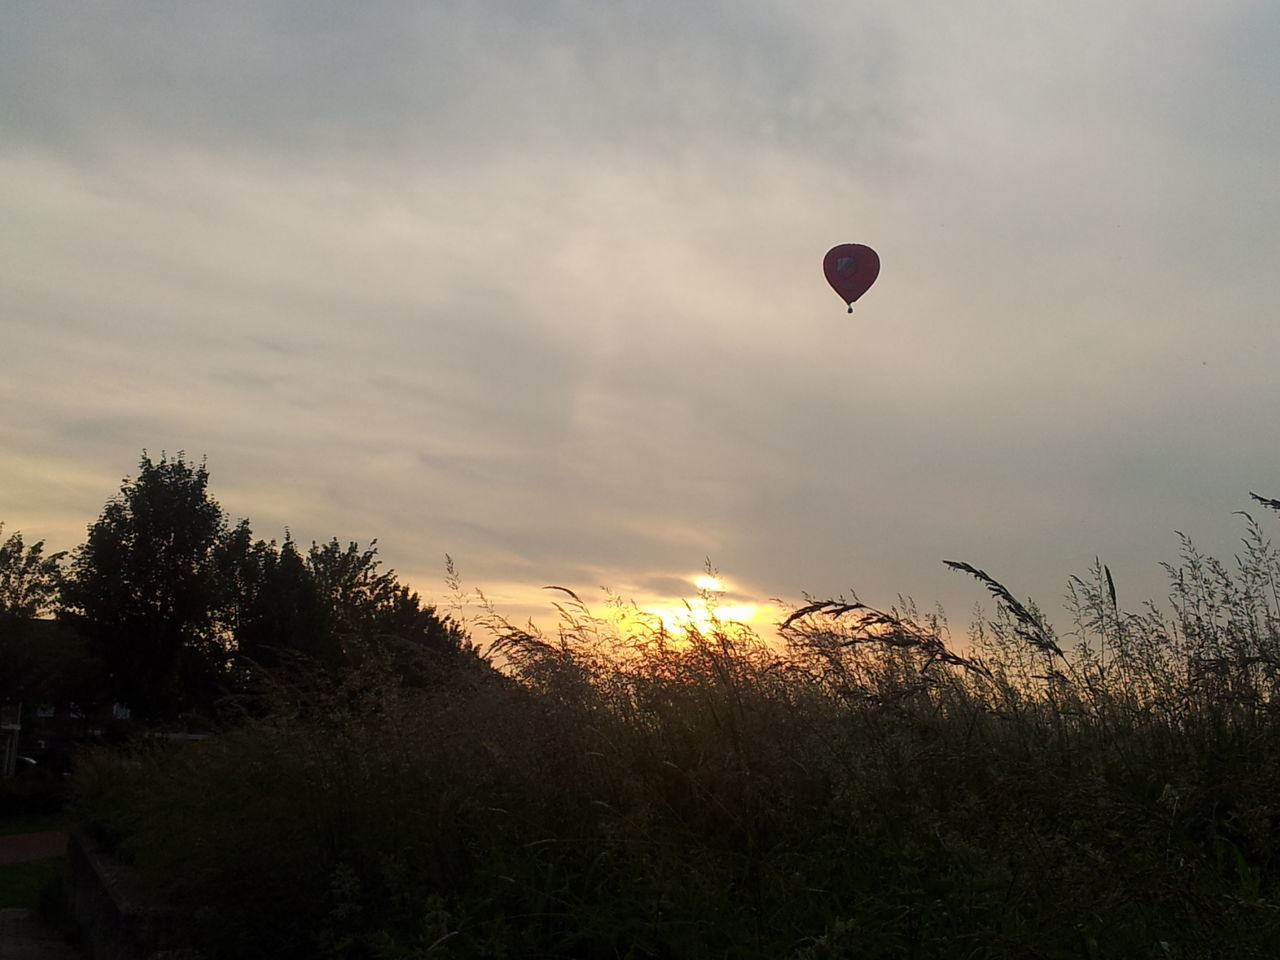 Adventure Air Vehicle Beauty In Nature Cloud - Sky Day Flying Hot Air Balloon Landscape Leisure Activity Nature No People Outdoor Pursuit Outdoors Parachute Paragliding Scenics Sky Sunset Transportation Tree Vacations